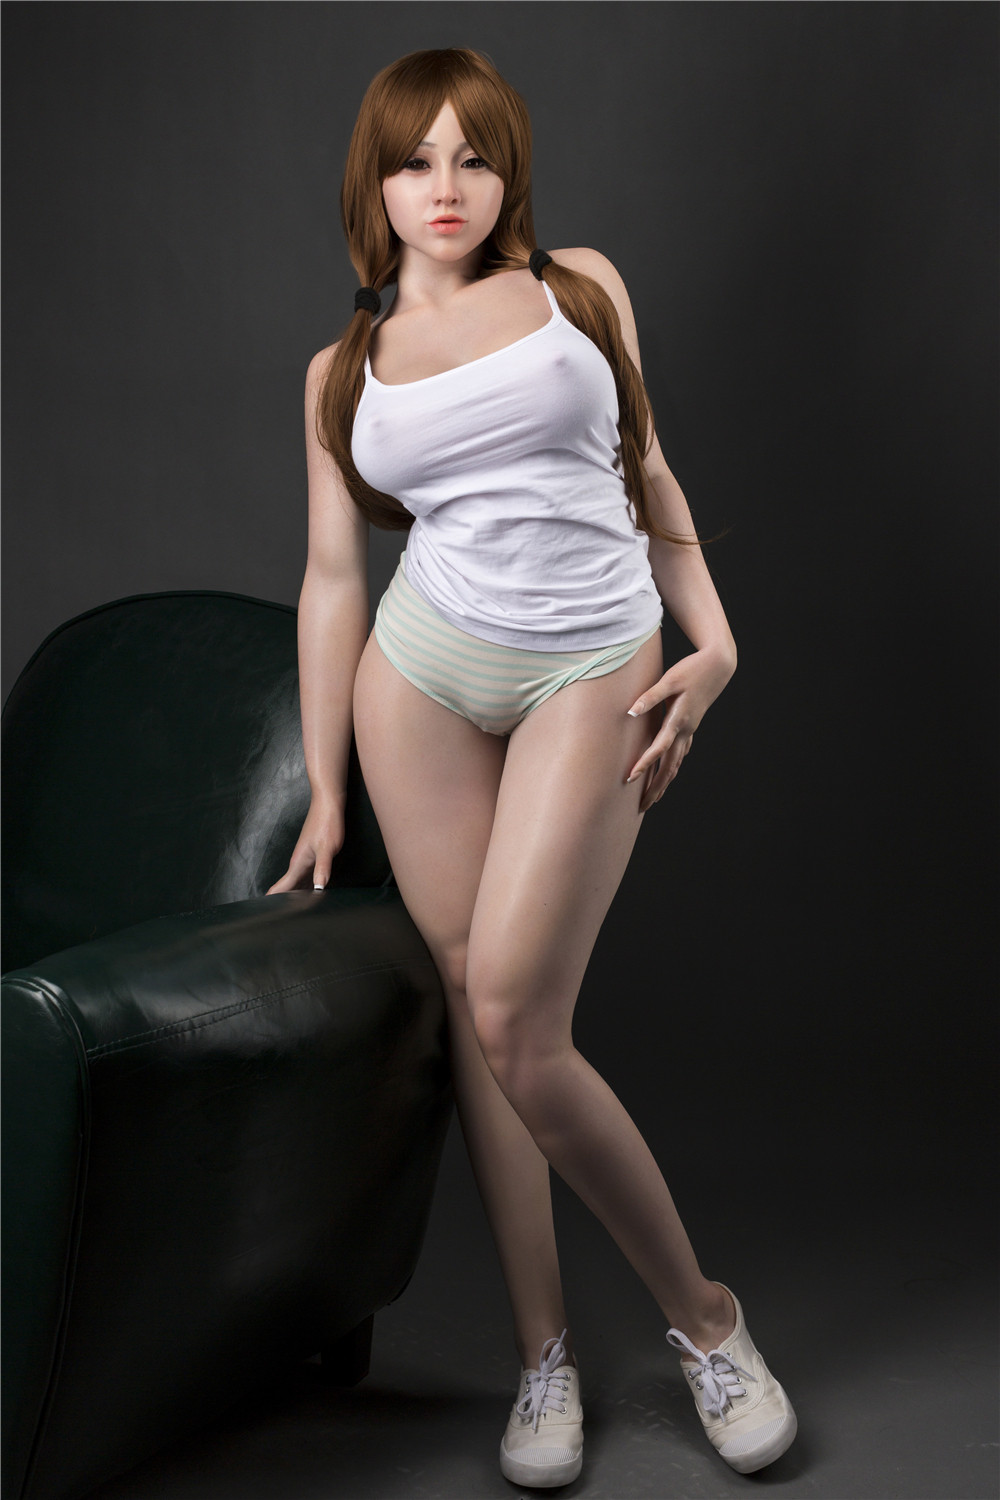 IL Doll 151cm(4.95ft) E-Cup Full Size lifelike Sex Silicone Doll with Head #13